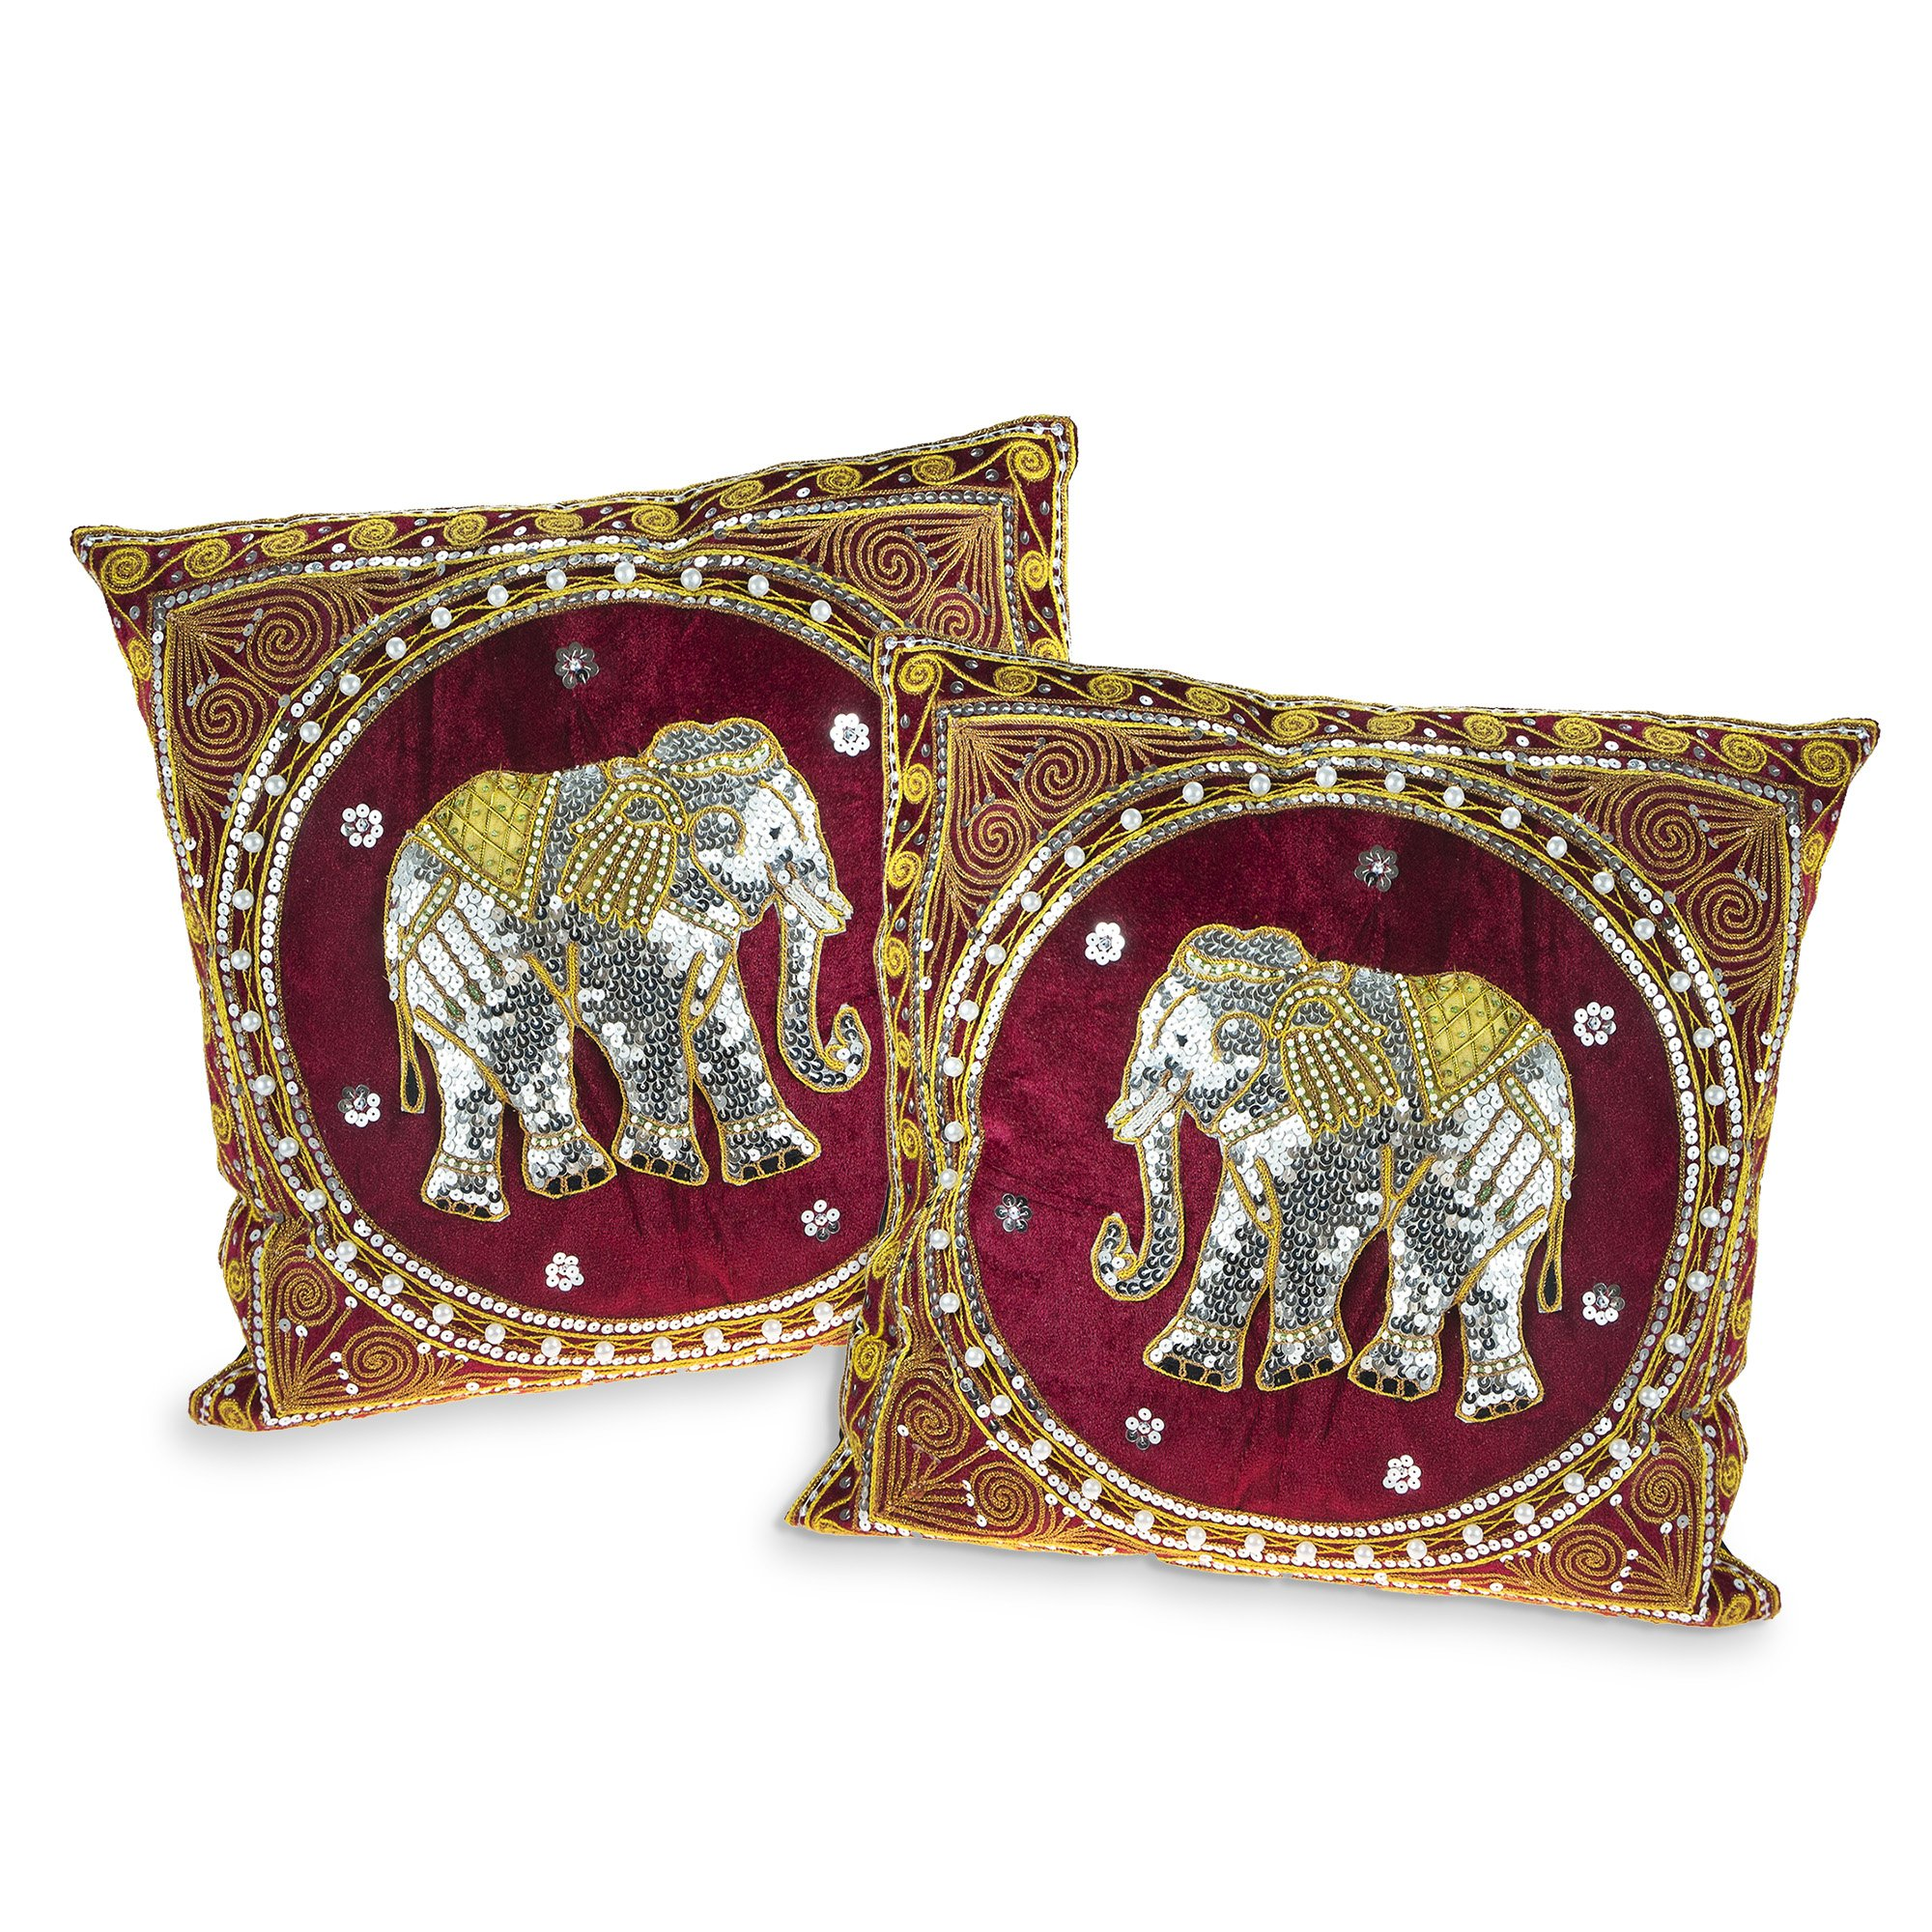 Thai Elephant Embroidered Velvet Throw Pillow Cases set of 2 Red by AeraVida